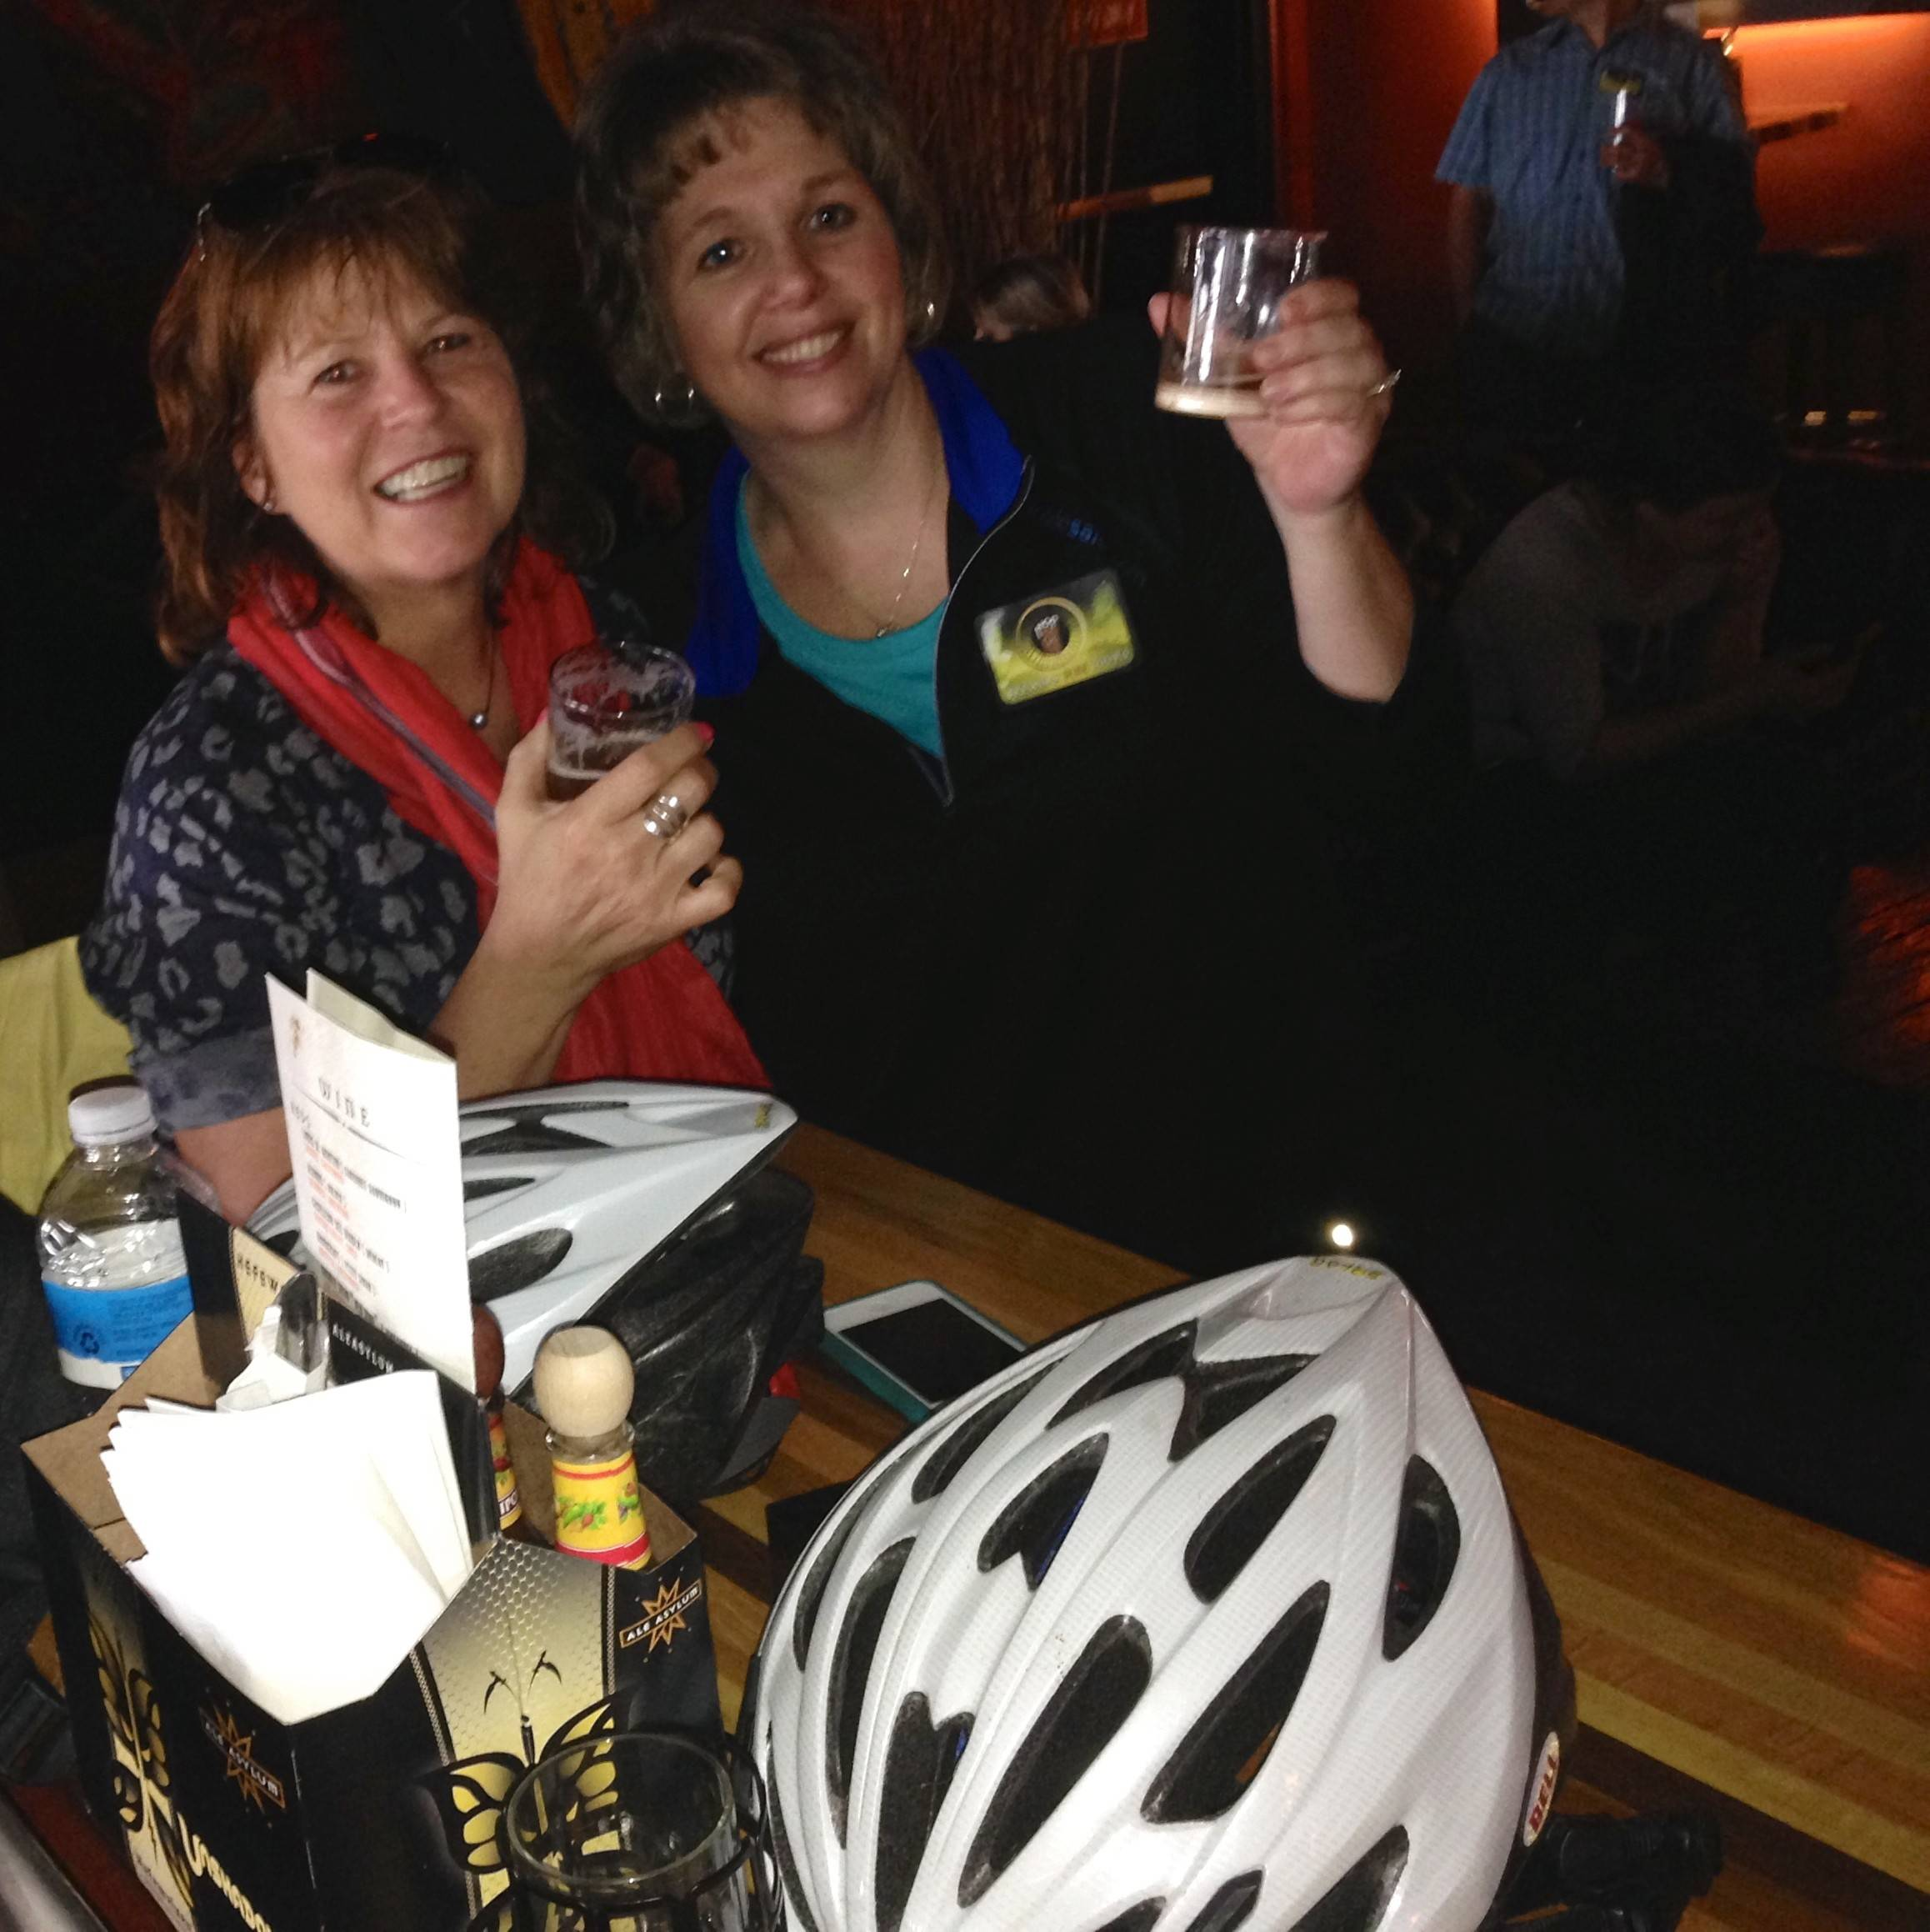 Sample microbrews while pedalling through one of Wisconsin's most scenic cities during the Madison Brewery Bike Tour, held the first weekend of every month through October.